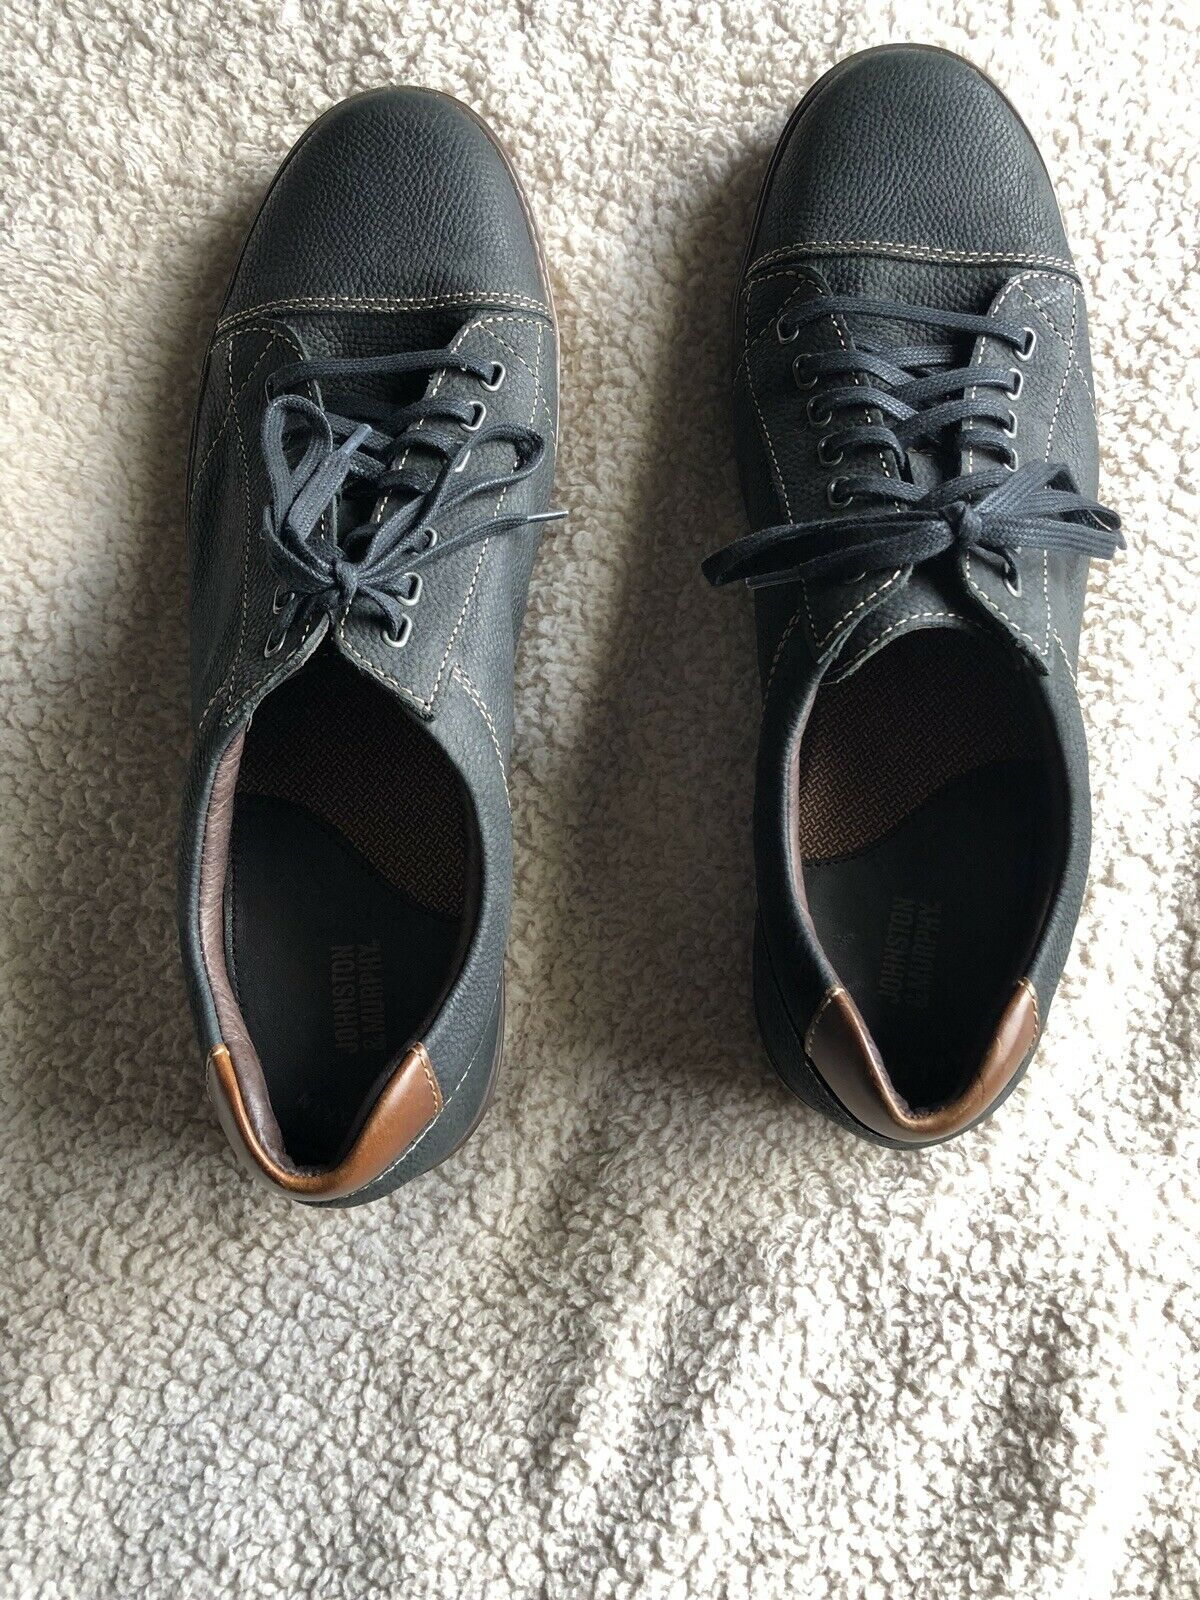 Johnston And Murphy Lace Up Sneakers Black Sheepskin  Leather - Men's US Size 13